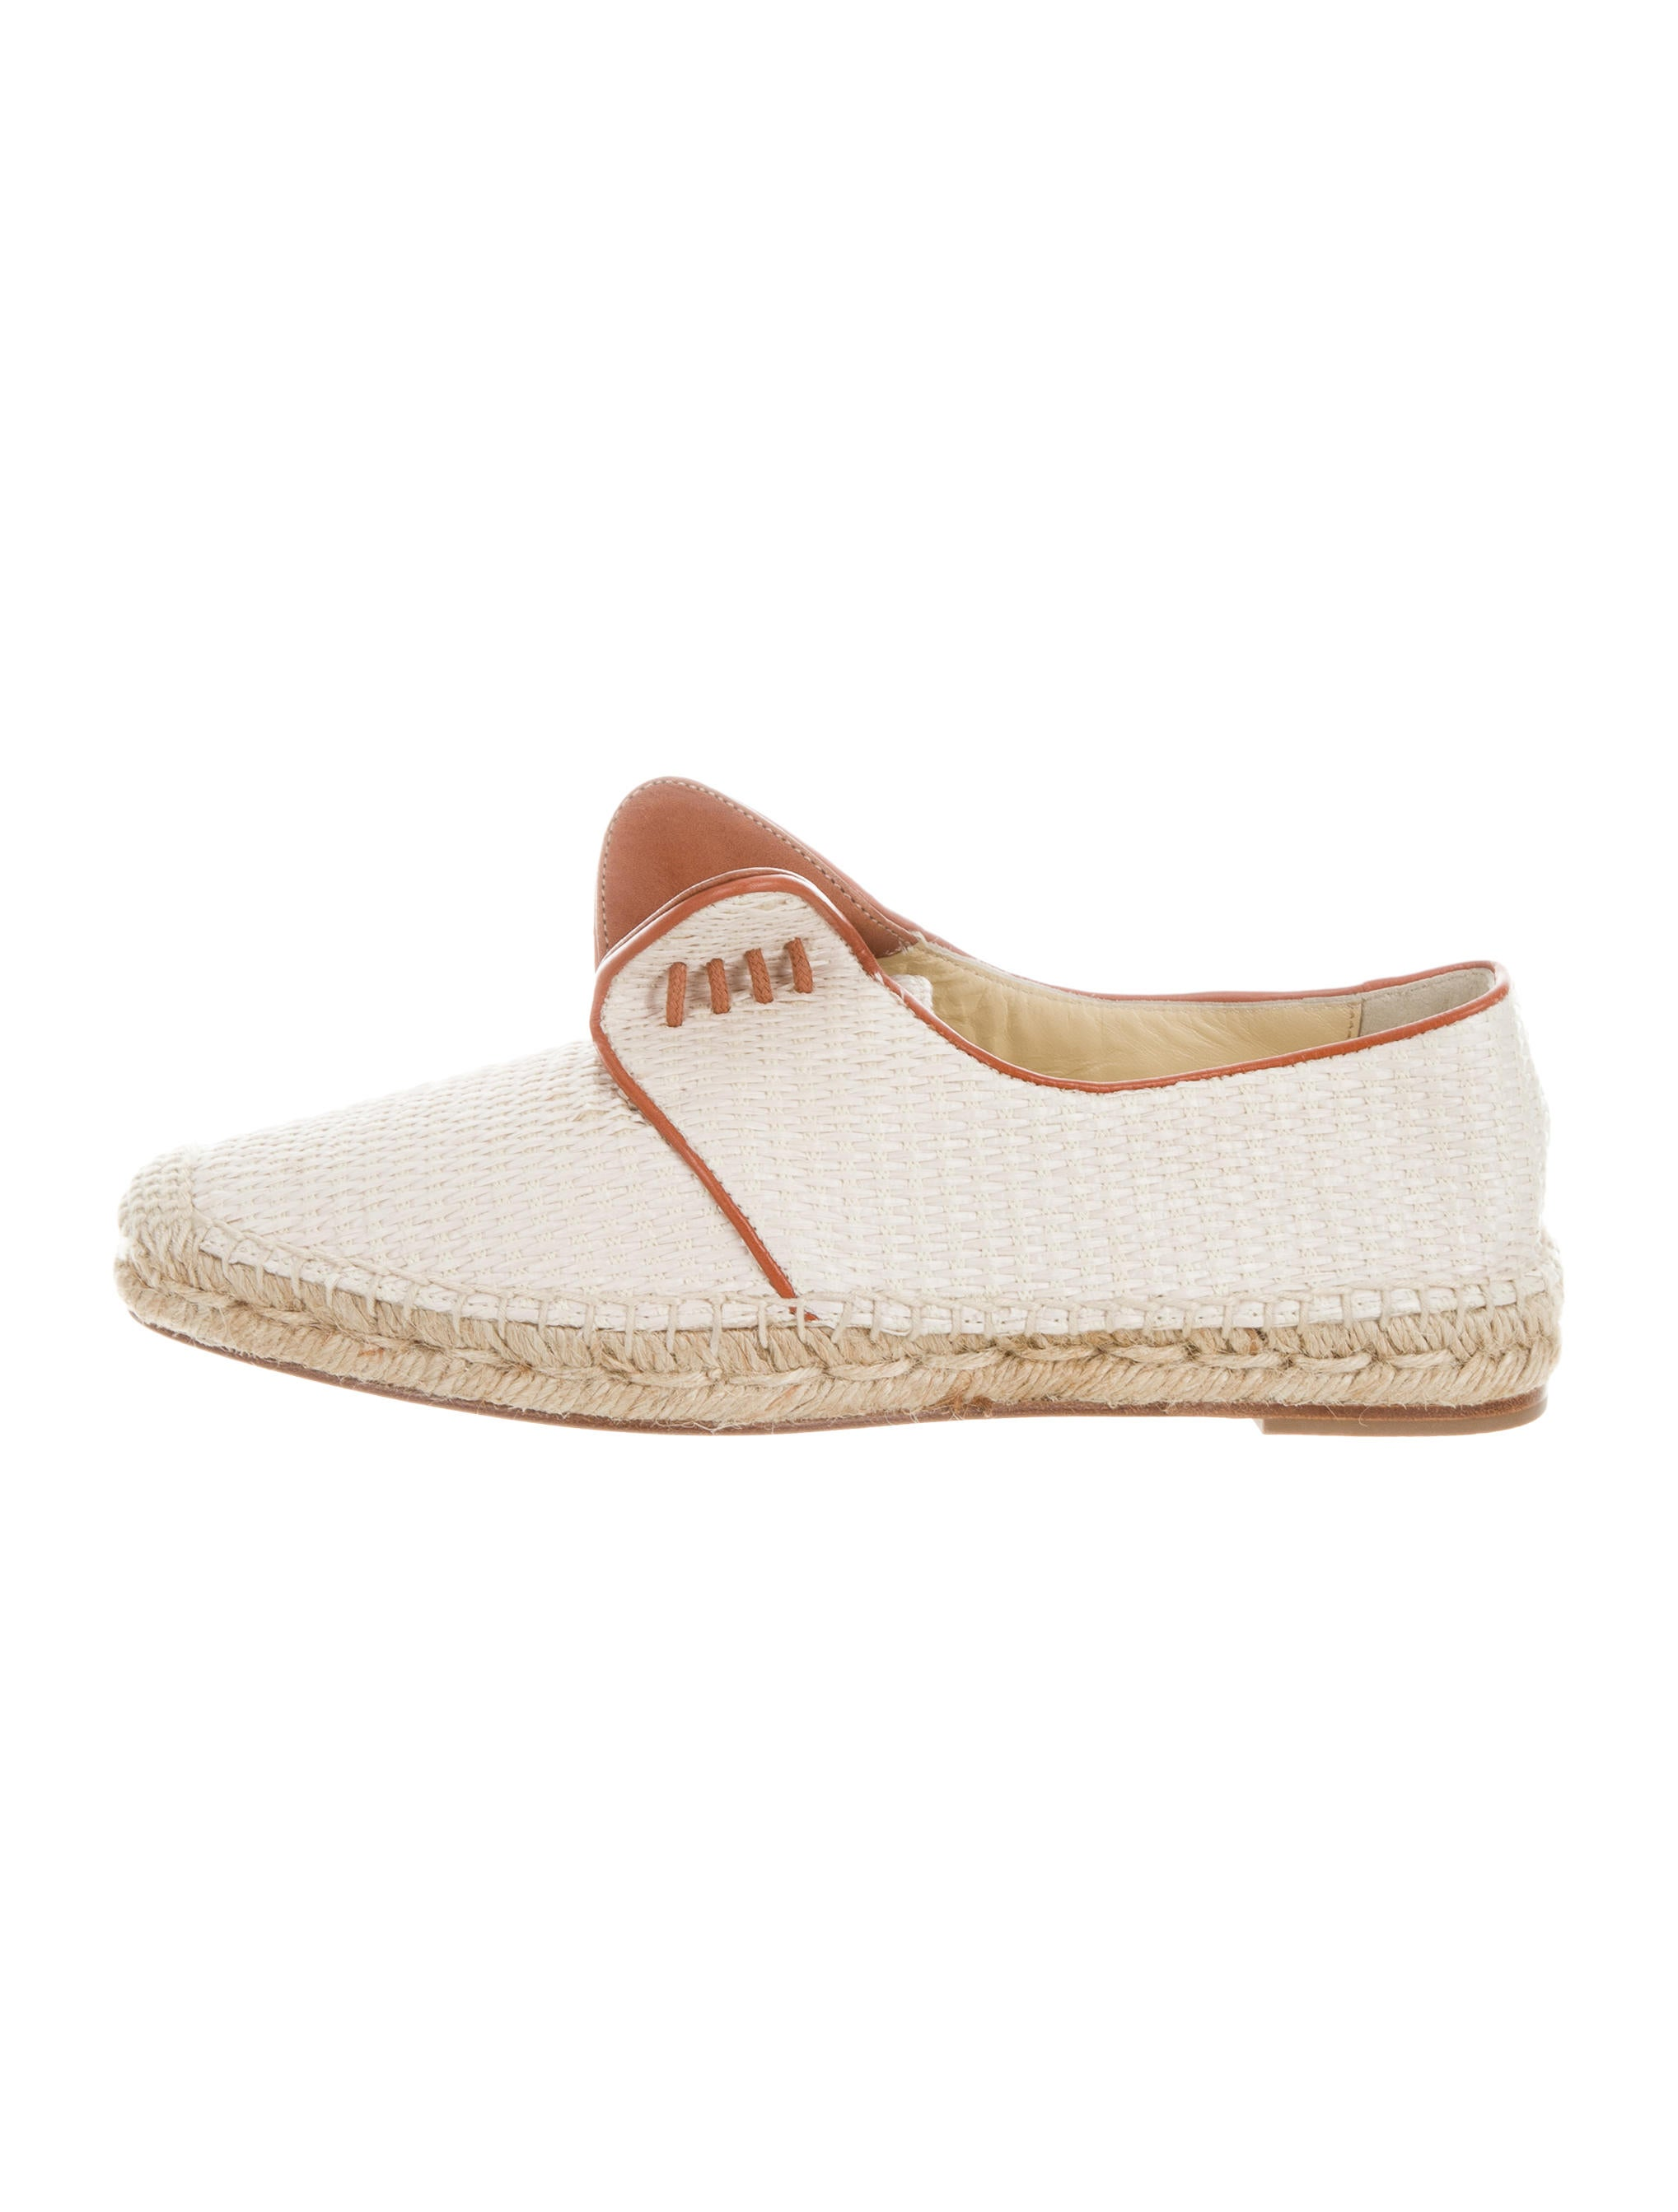 Sarah Flint Leather-Trimmed Lace-Up Espadrilles discount how much kboUTm7